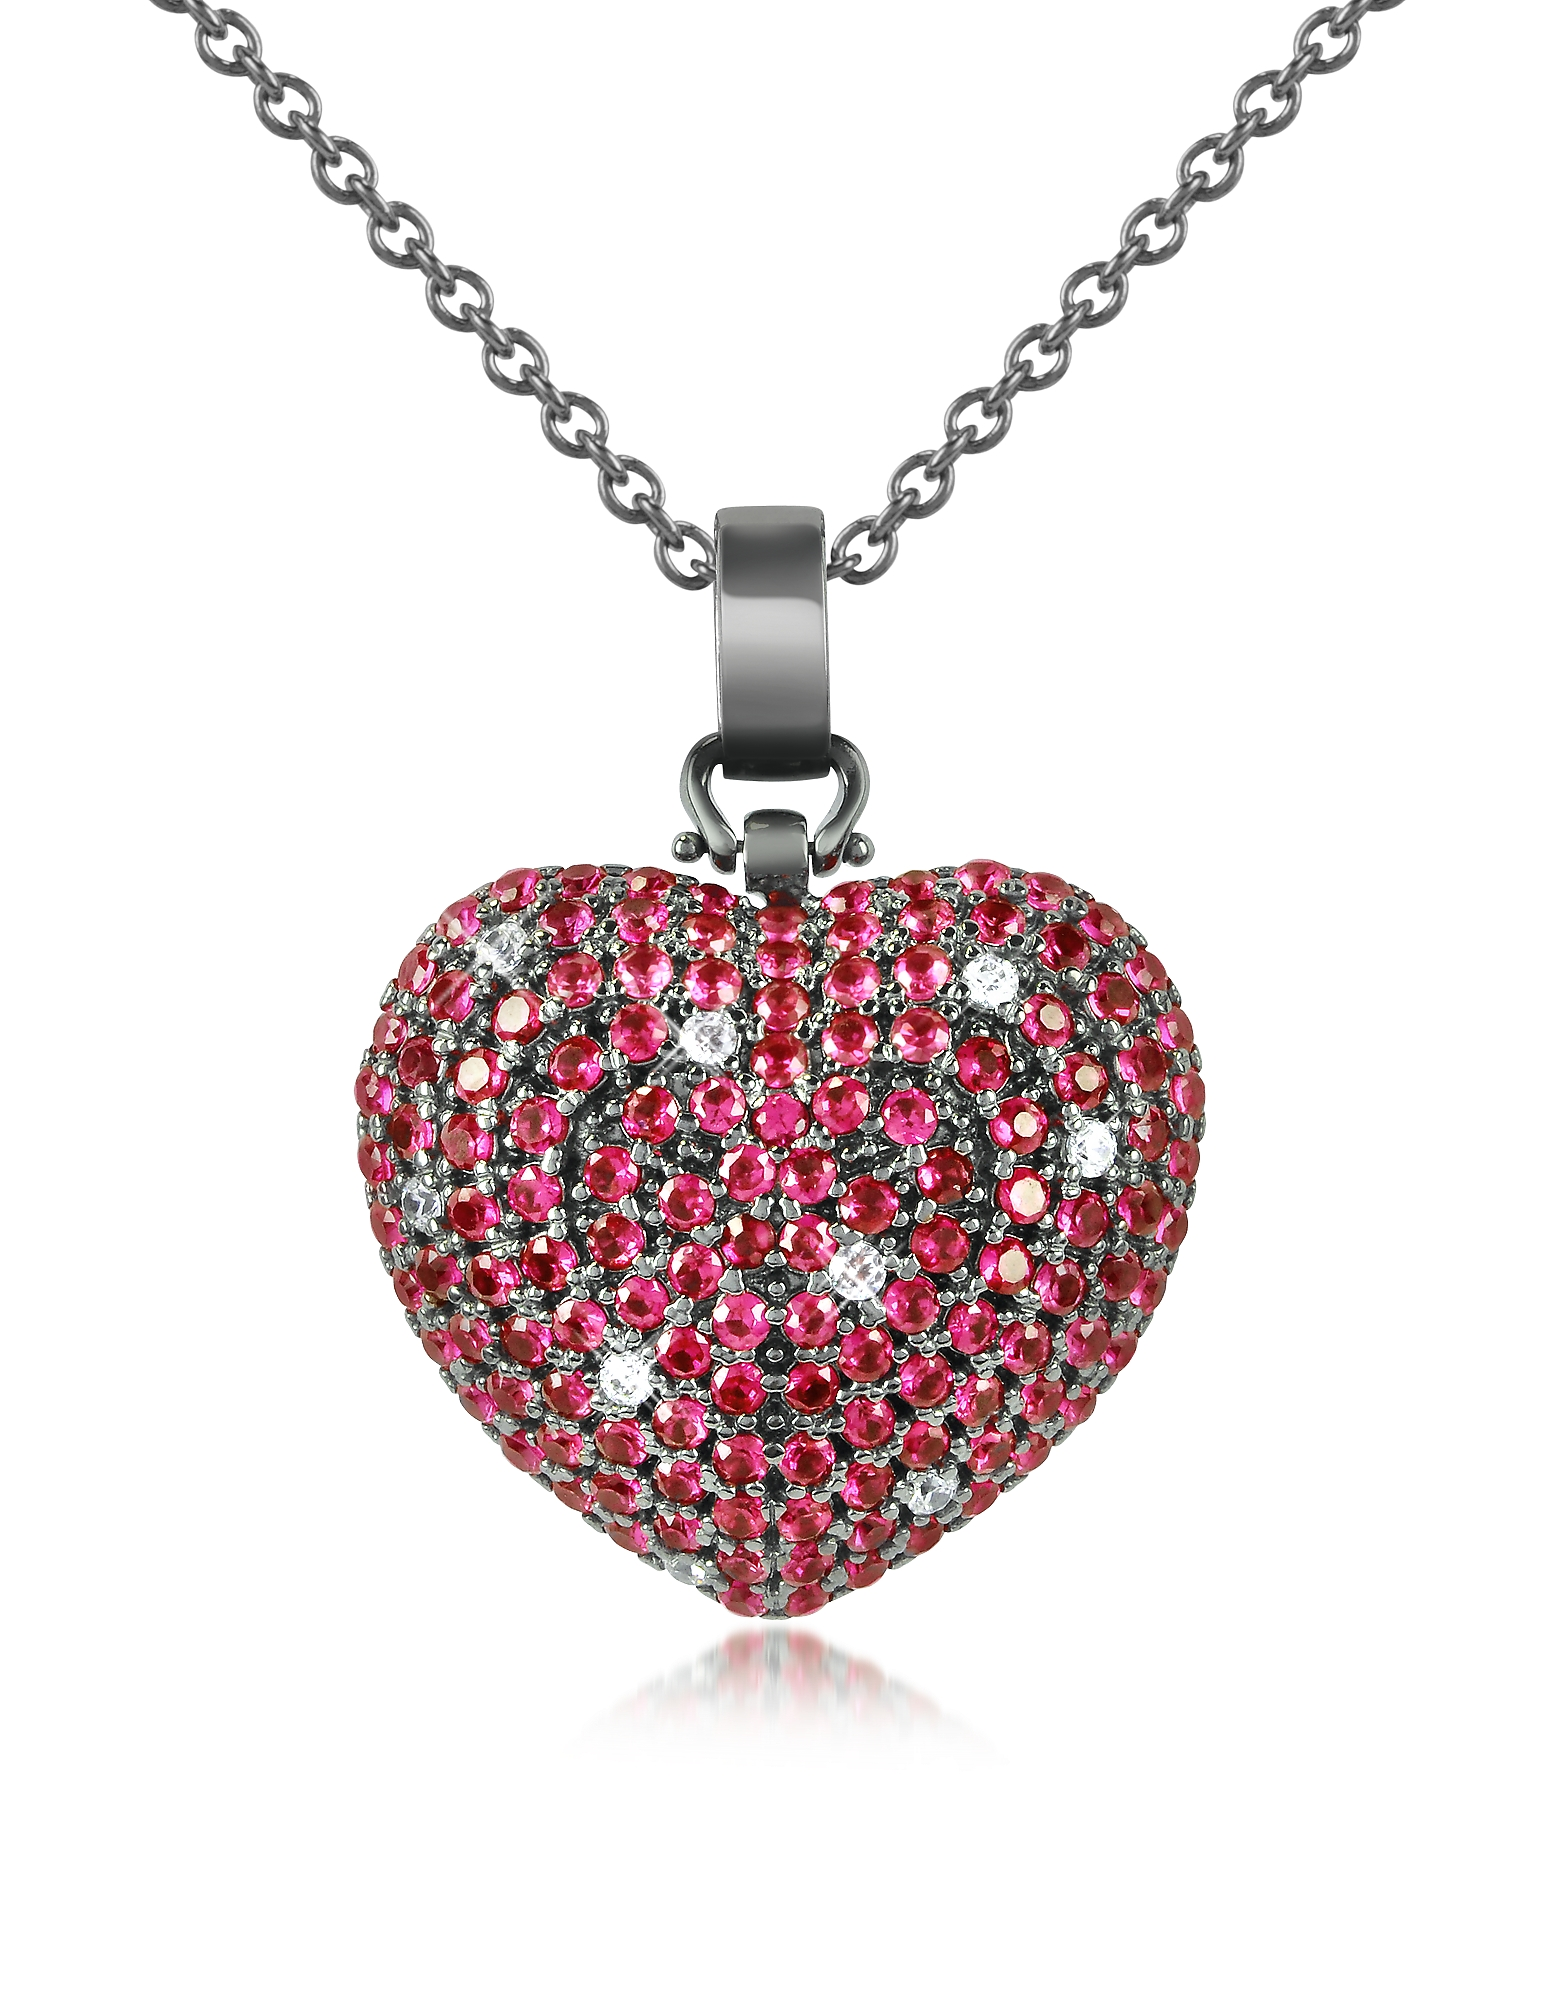 Azhar Necklaces, Sterling Silver and Cubic Zirconia Heart Pendant Necklace